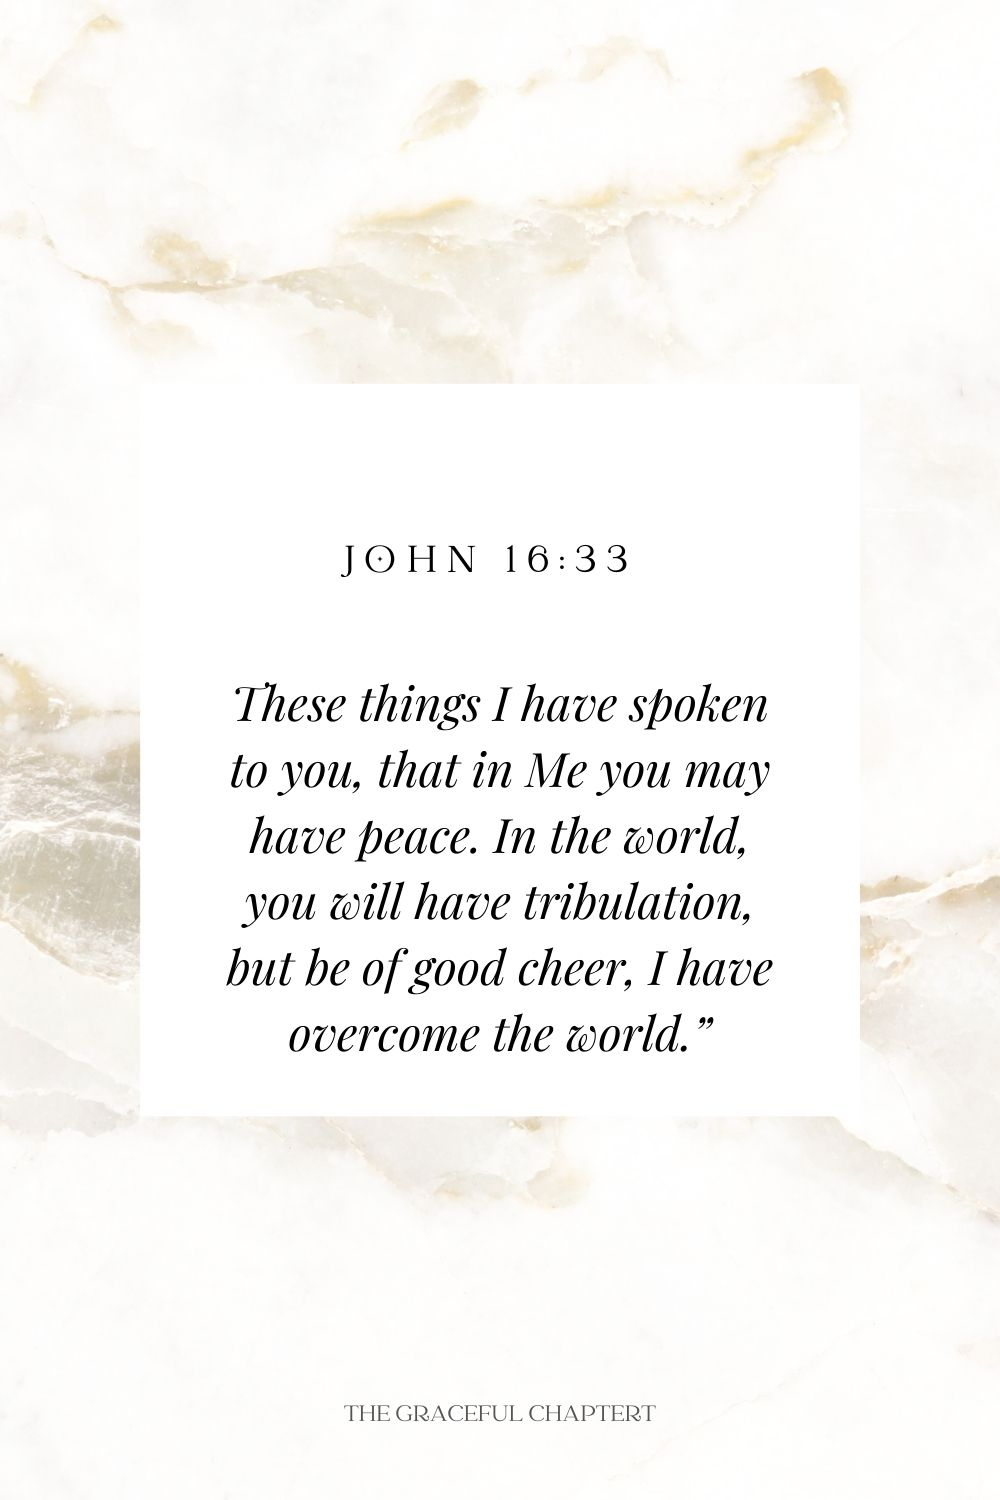 """These things I have spoken to you, that in Me you may have peace. In the world, you will have tribulation, but be of good cheer, I have overcome the world."""" John 16:33"""